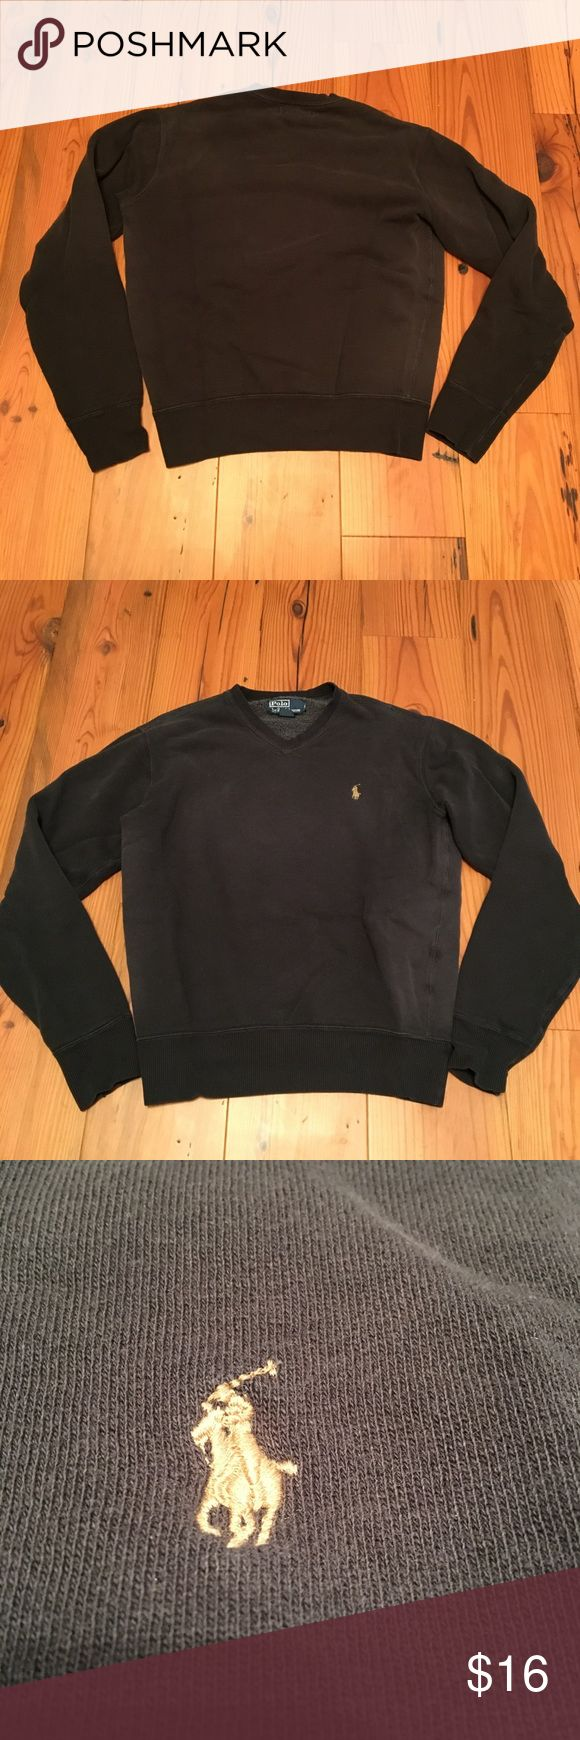 Men's Polo Ralph Lauren Sweatshirt Gray S Polo Ralph Lauren Sweatshirt. In gently worn condition. Dark gray with tan pony logo. Size small. Please contact me with any questions. Thank you for looking! 😃 Polo by Ralph Lauren Shirts Sweatshirts & Hoodies